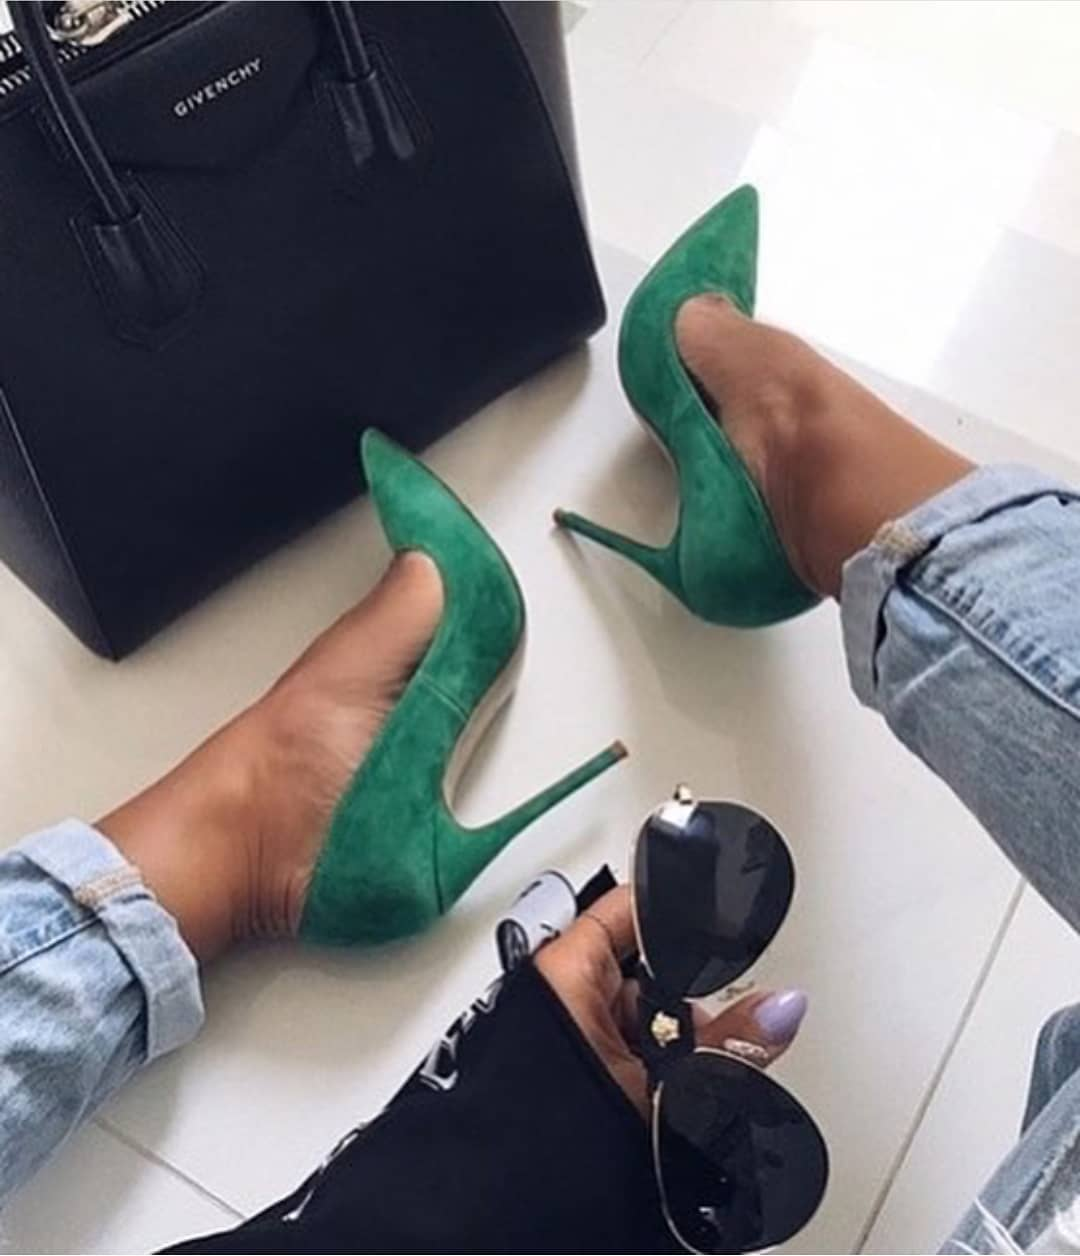 Suede Green Pumps With Boyfriend Jeans For Summer Casual Street Walks 2019